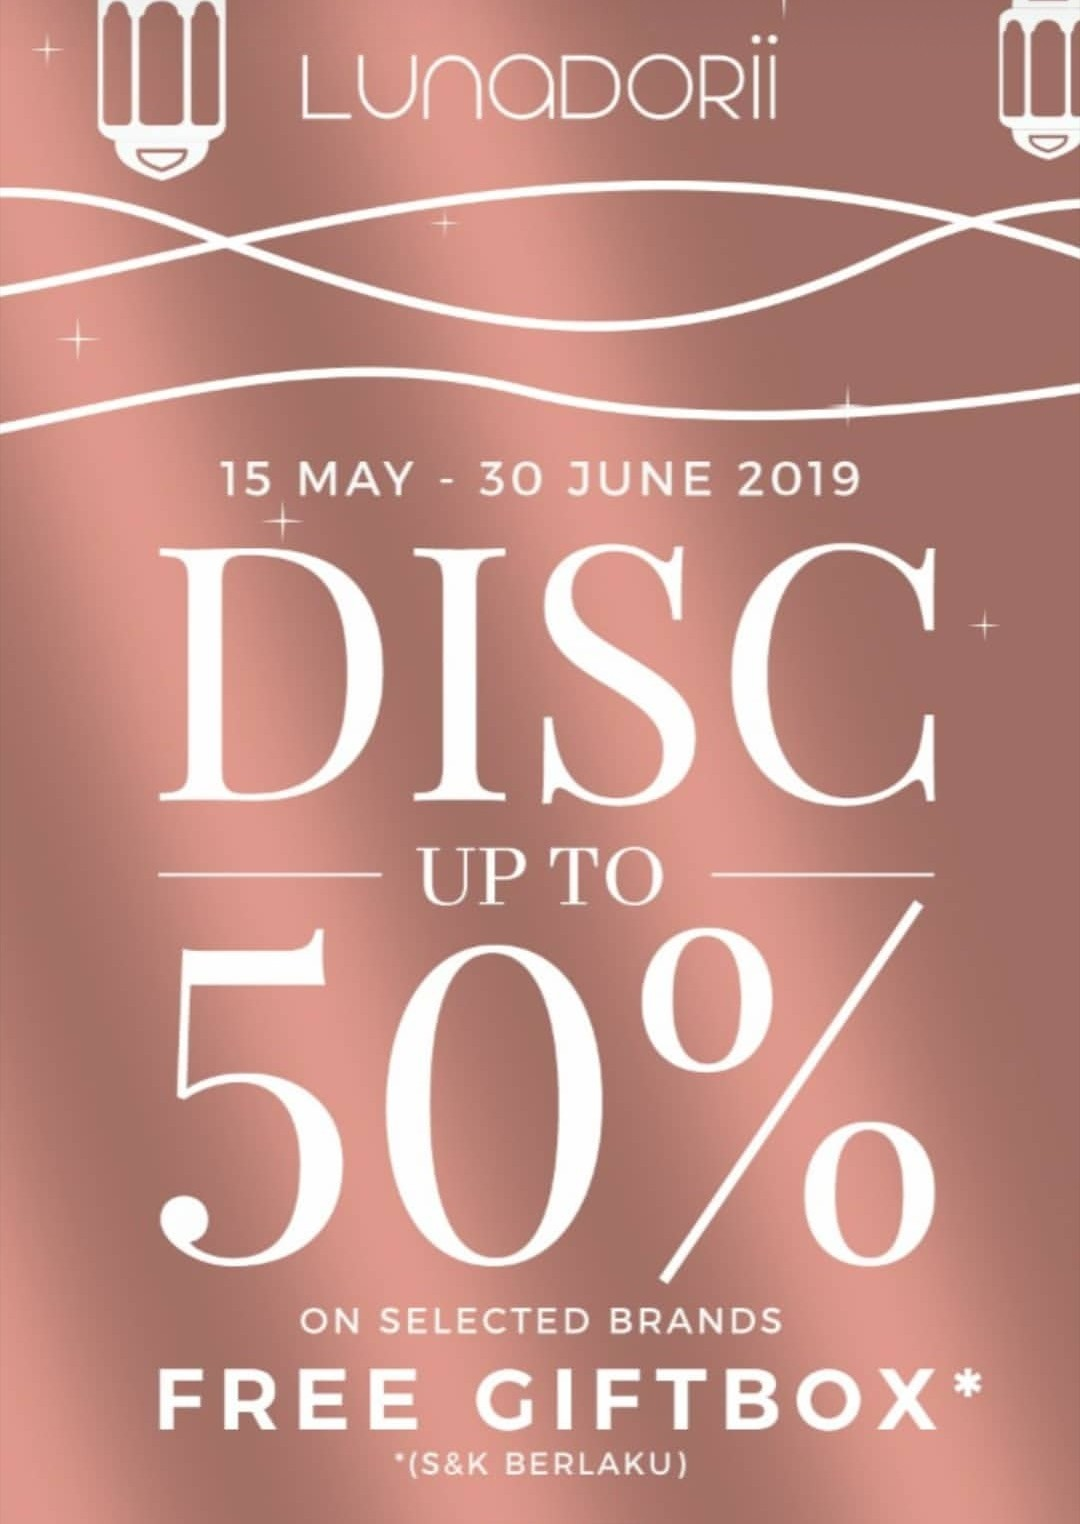 LUNADORII Promo Discount Up to 50% on selected brands + Free Giftbox